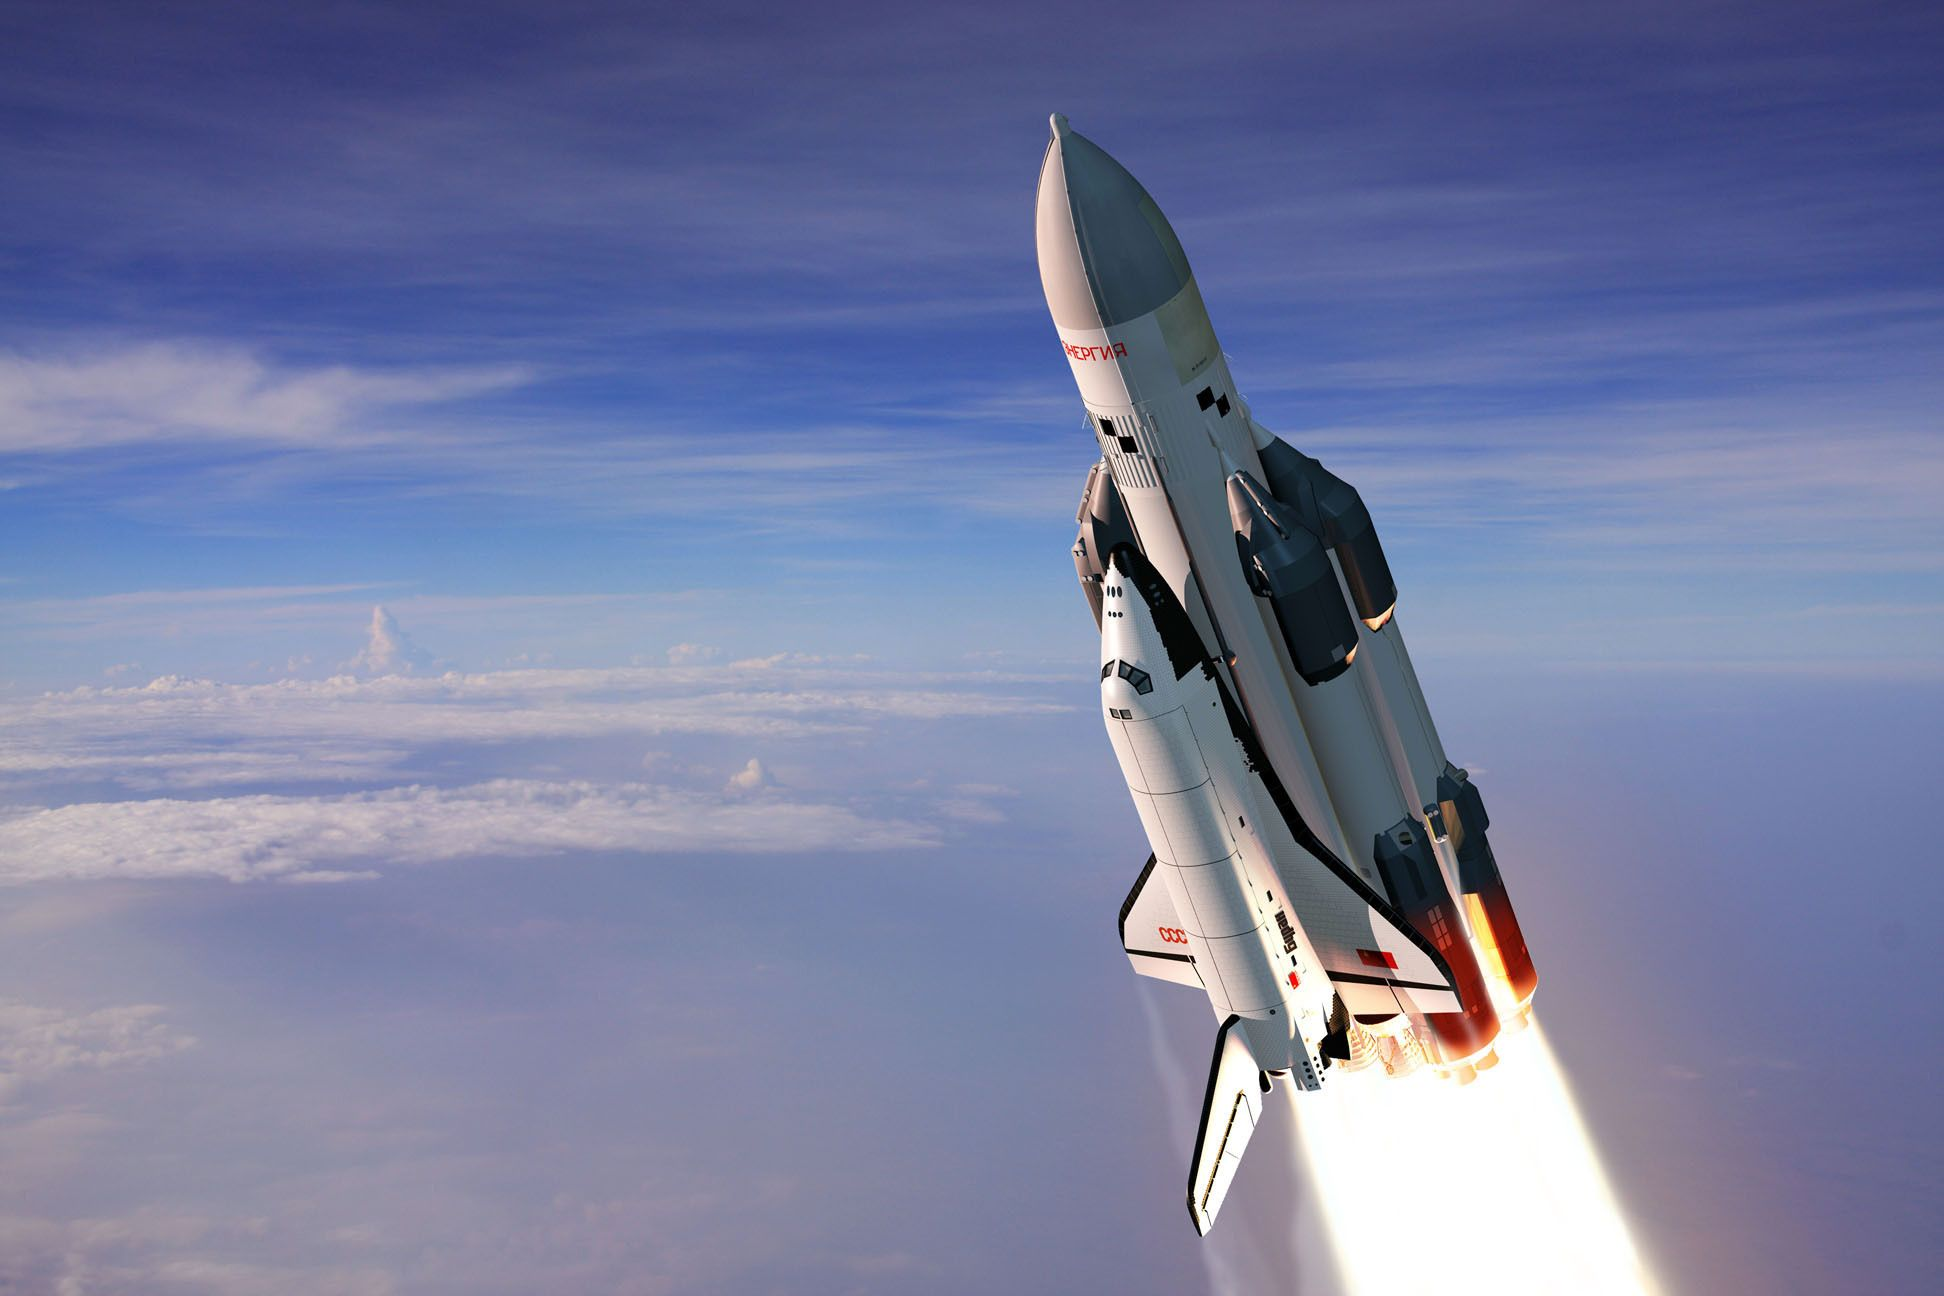 Hd Wallpaper Computer Wallpapers Desktop Backgrounds 1944x1296 Id 362764 Space Shuttle Space Flight Space Travel